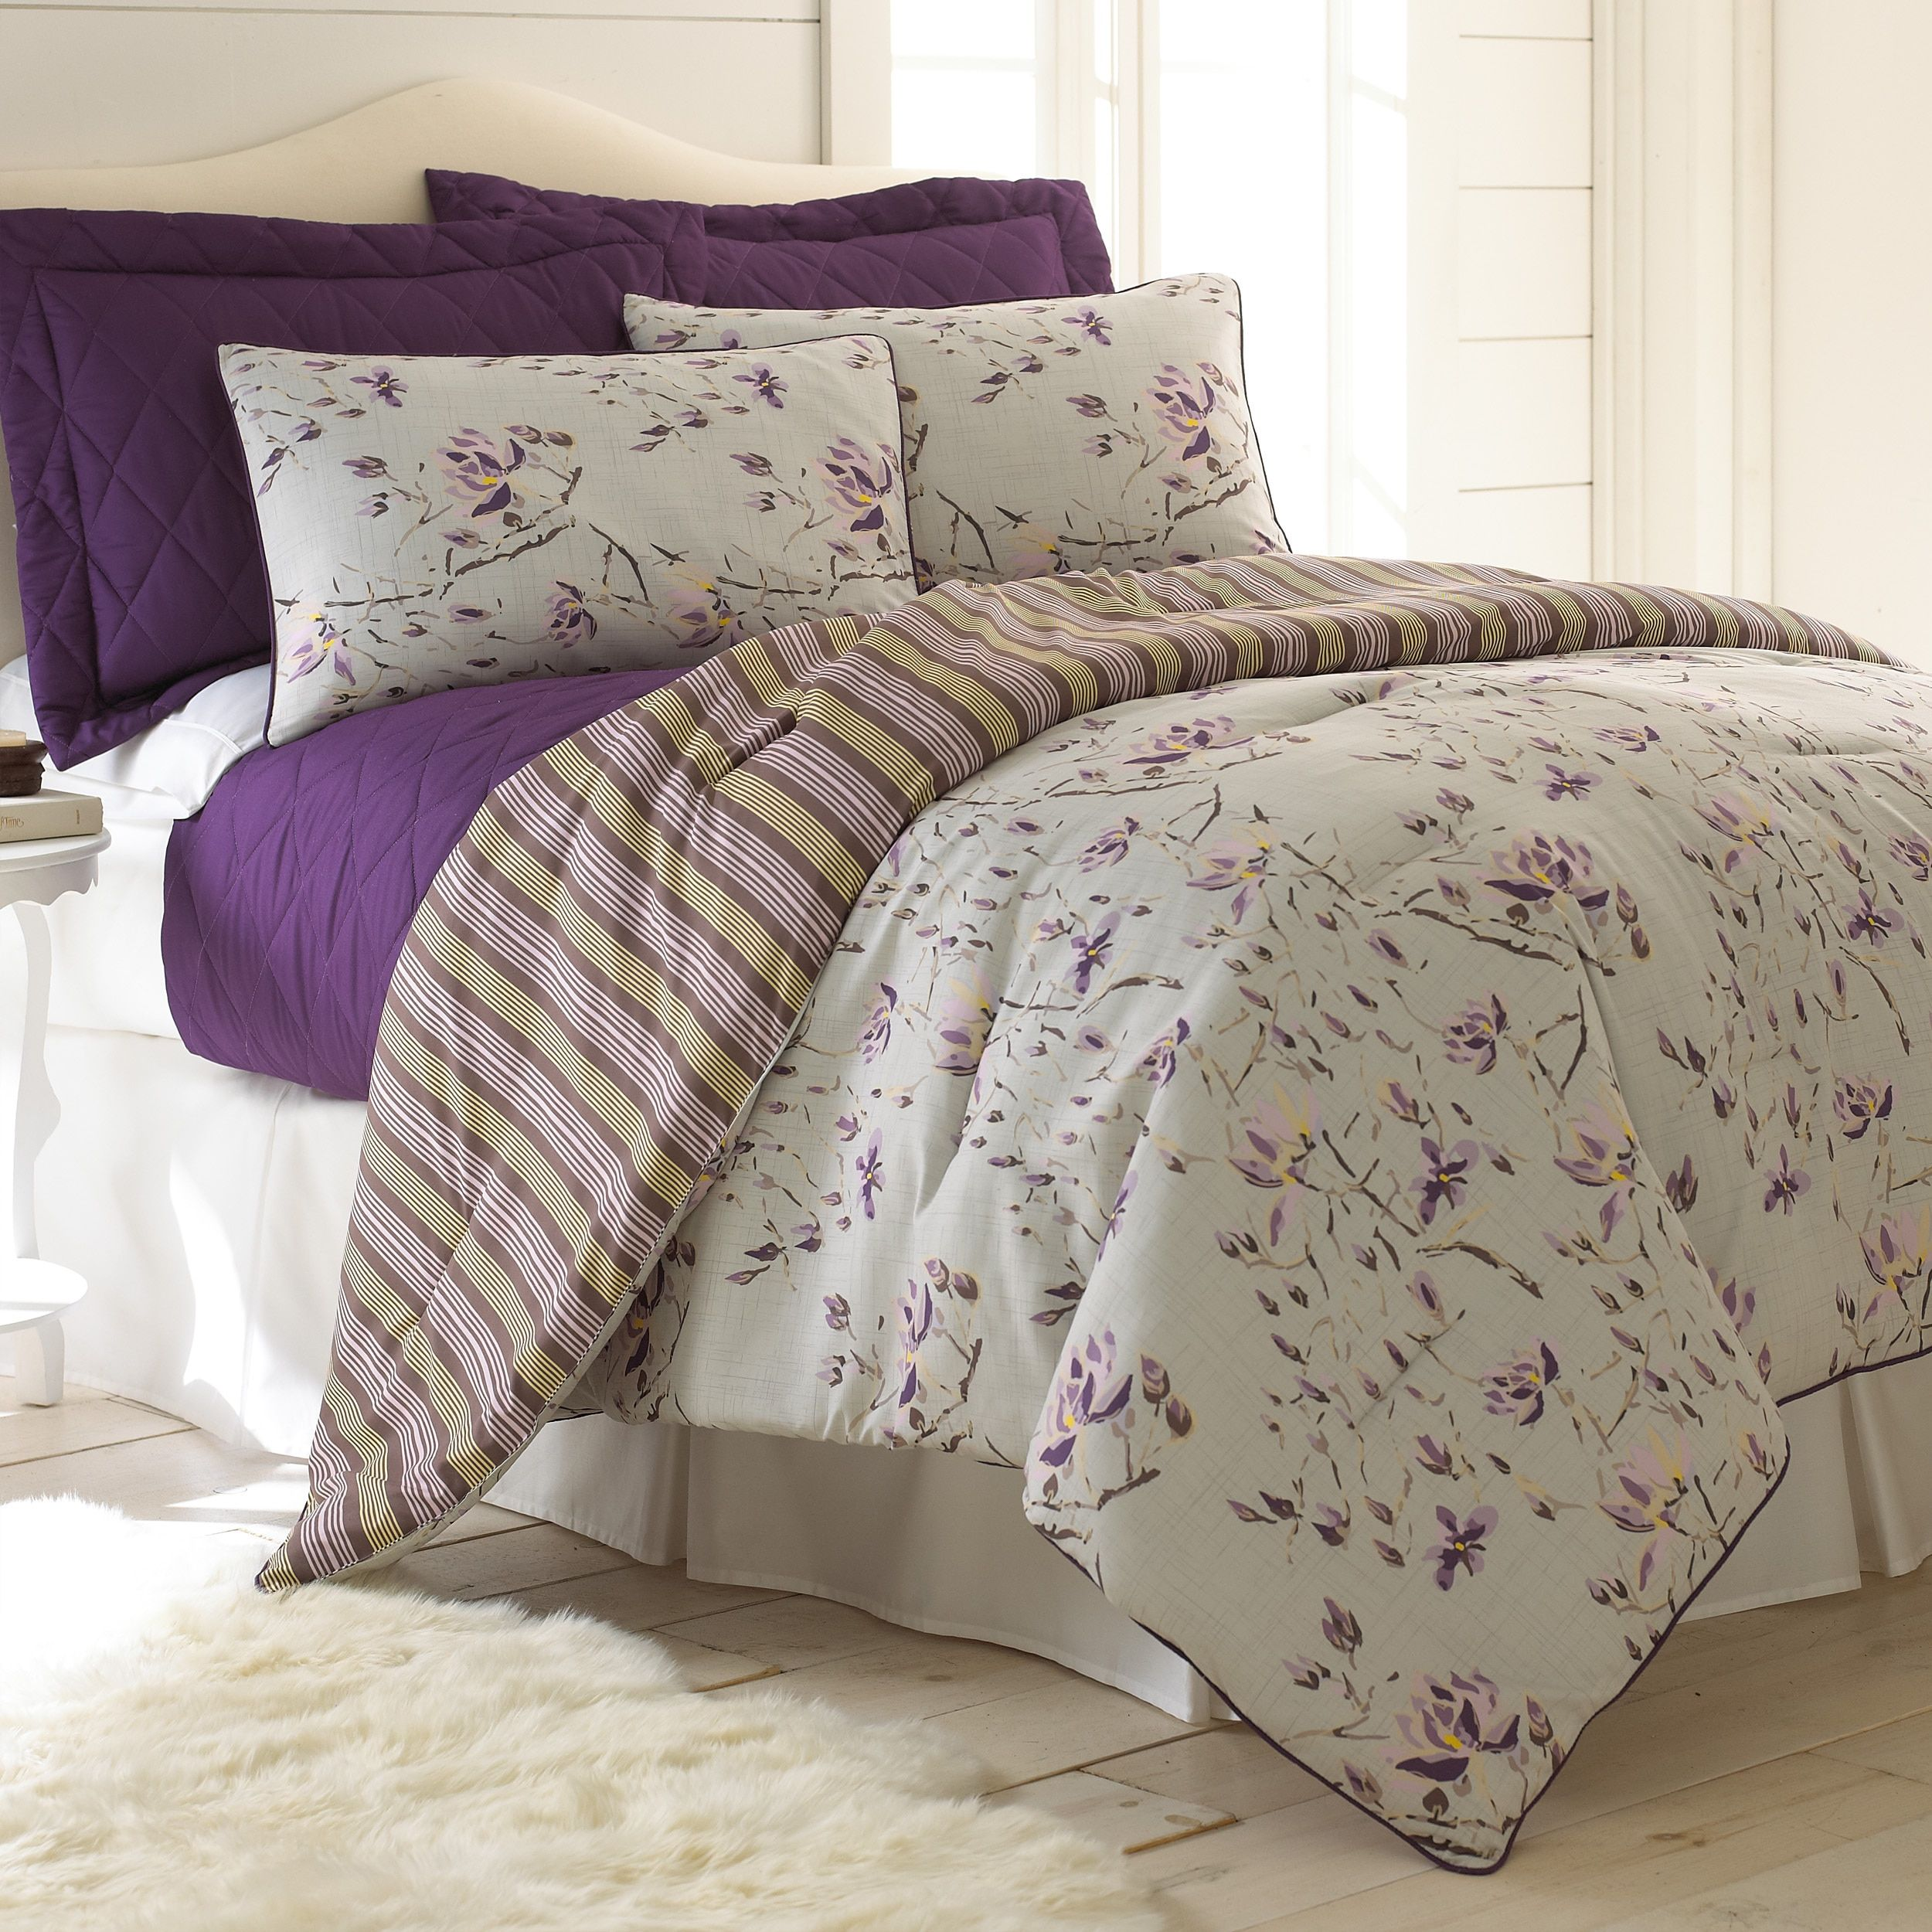 Chloe Reversible 6 piece forter and Coverlet Set